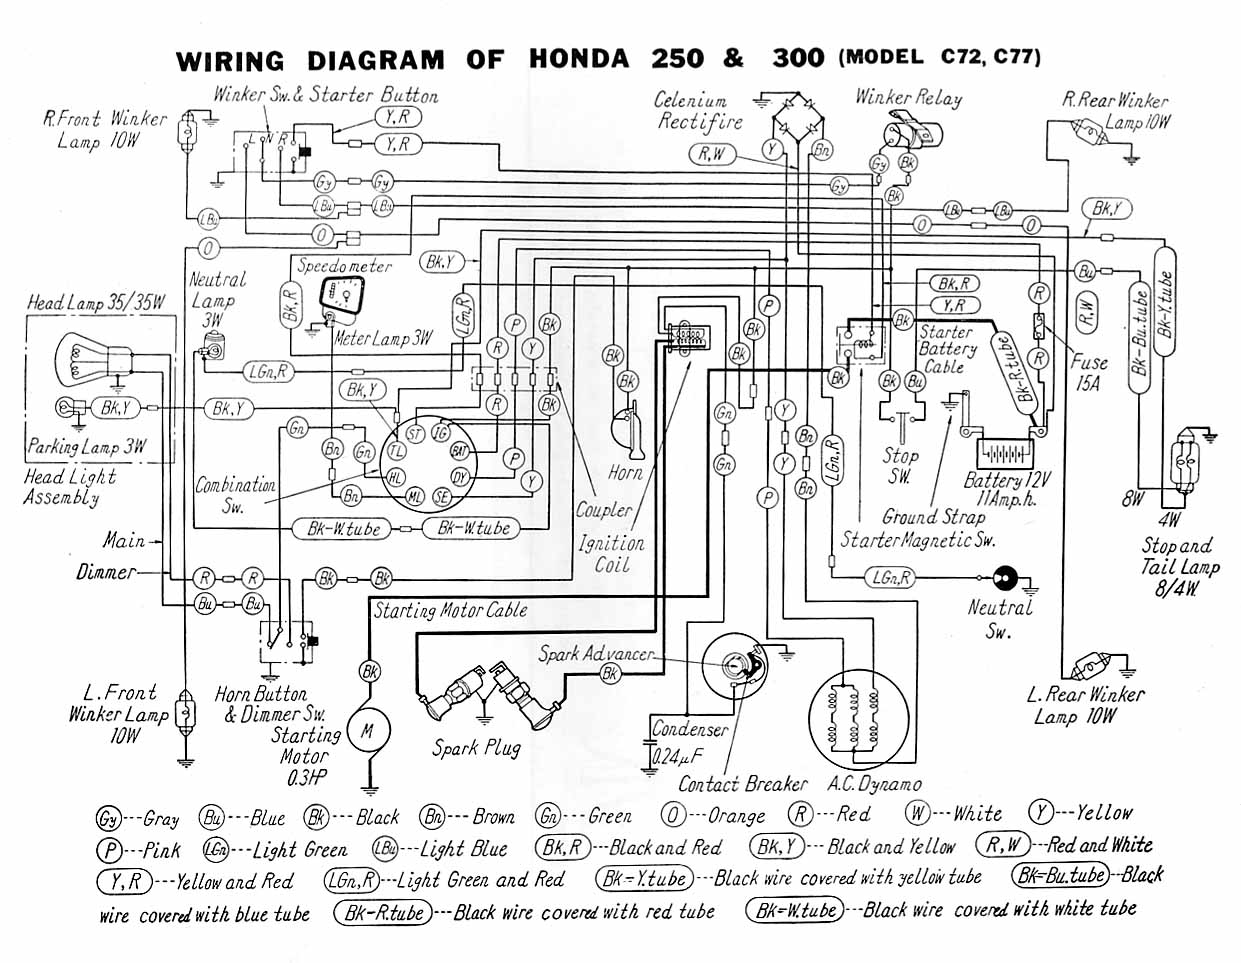 Honda Motorcycle Wiring Diagrams Pdf Library 150 Diagram C77